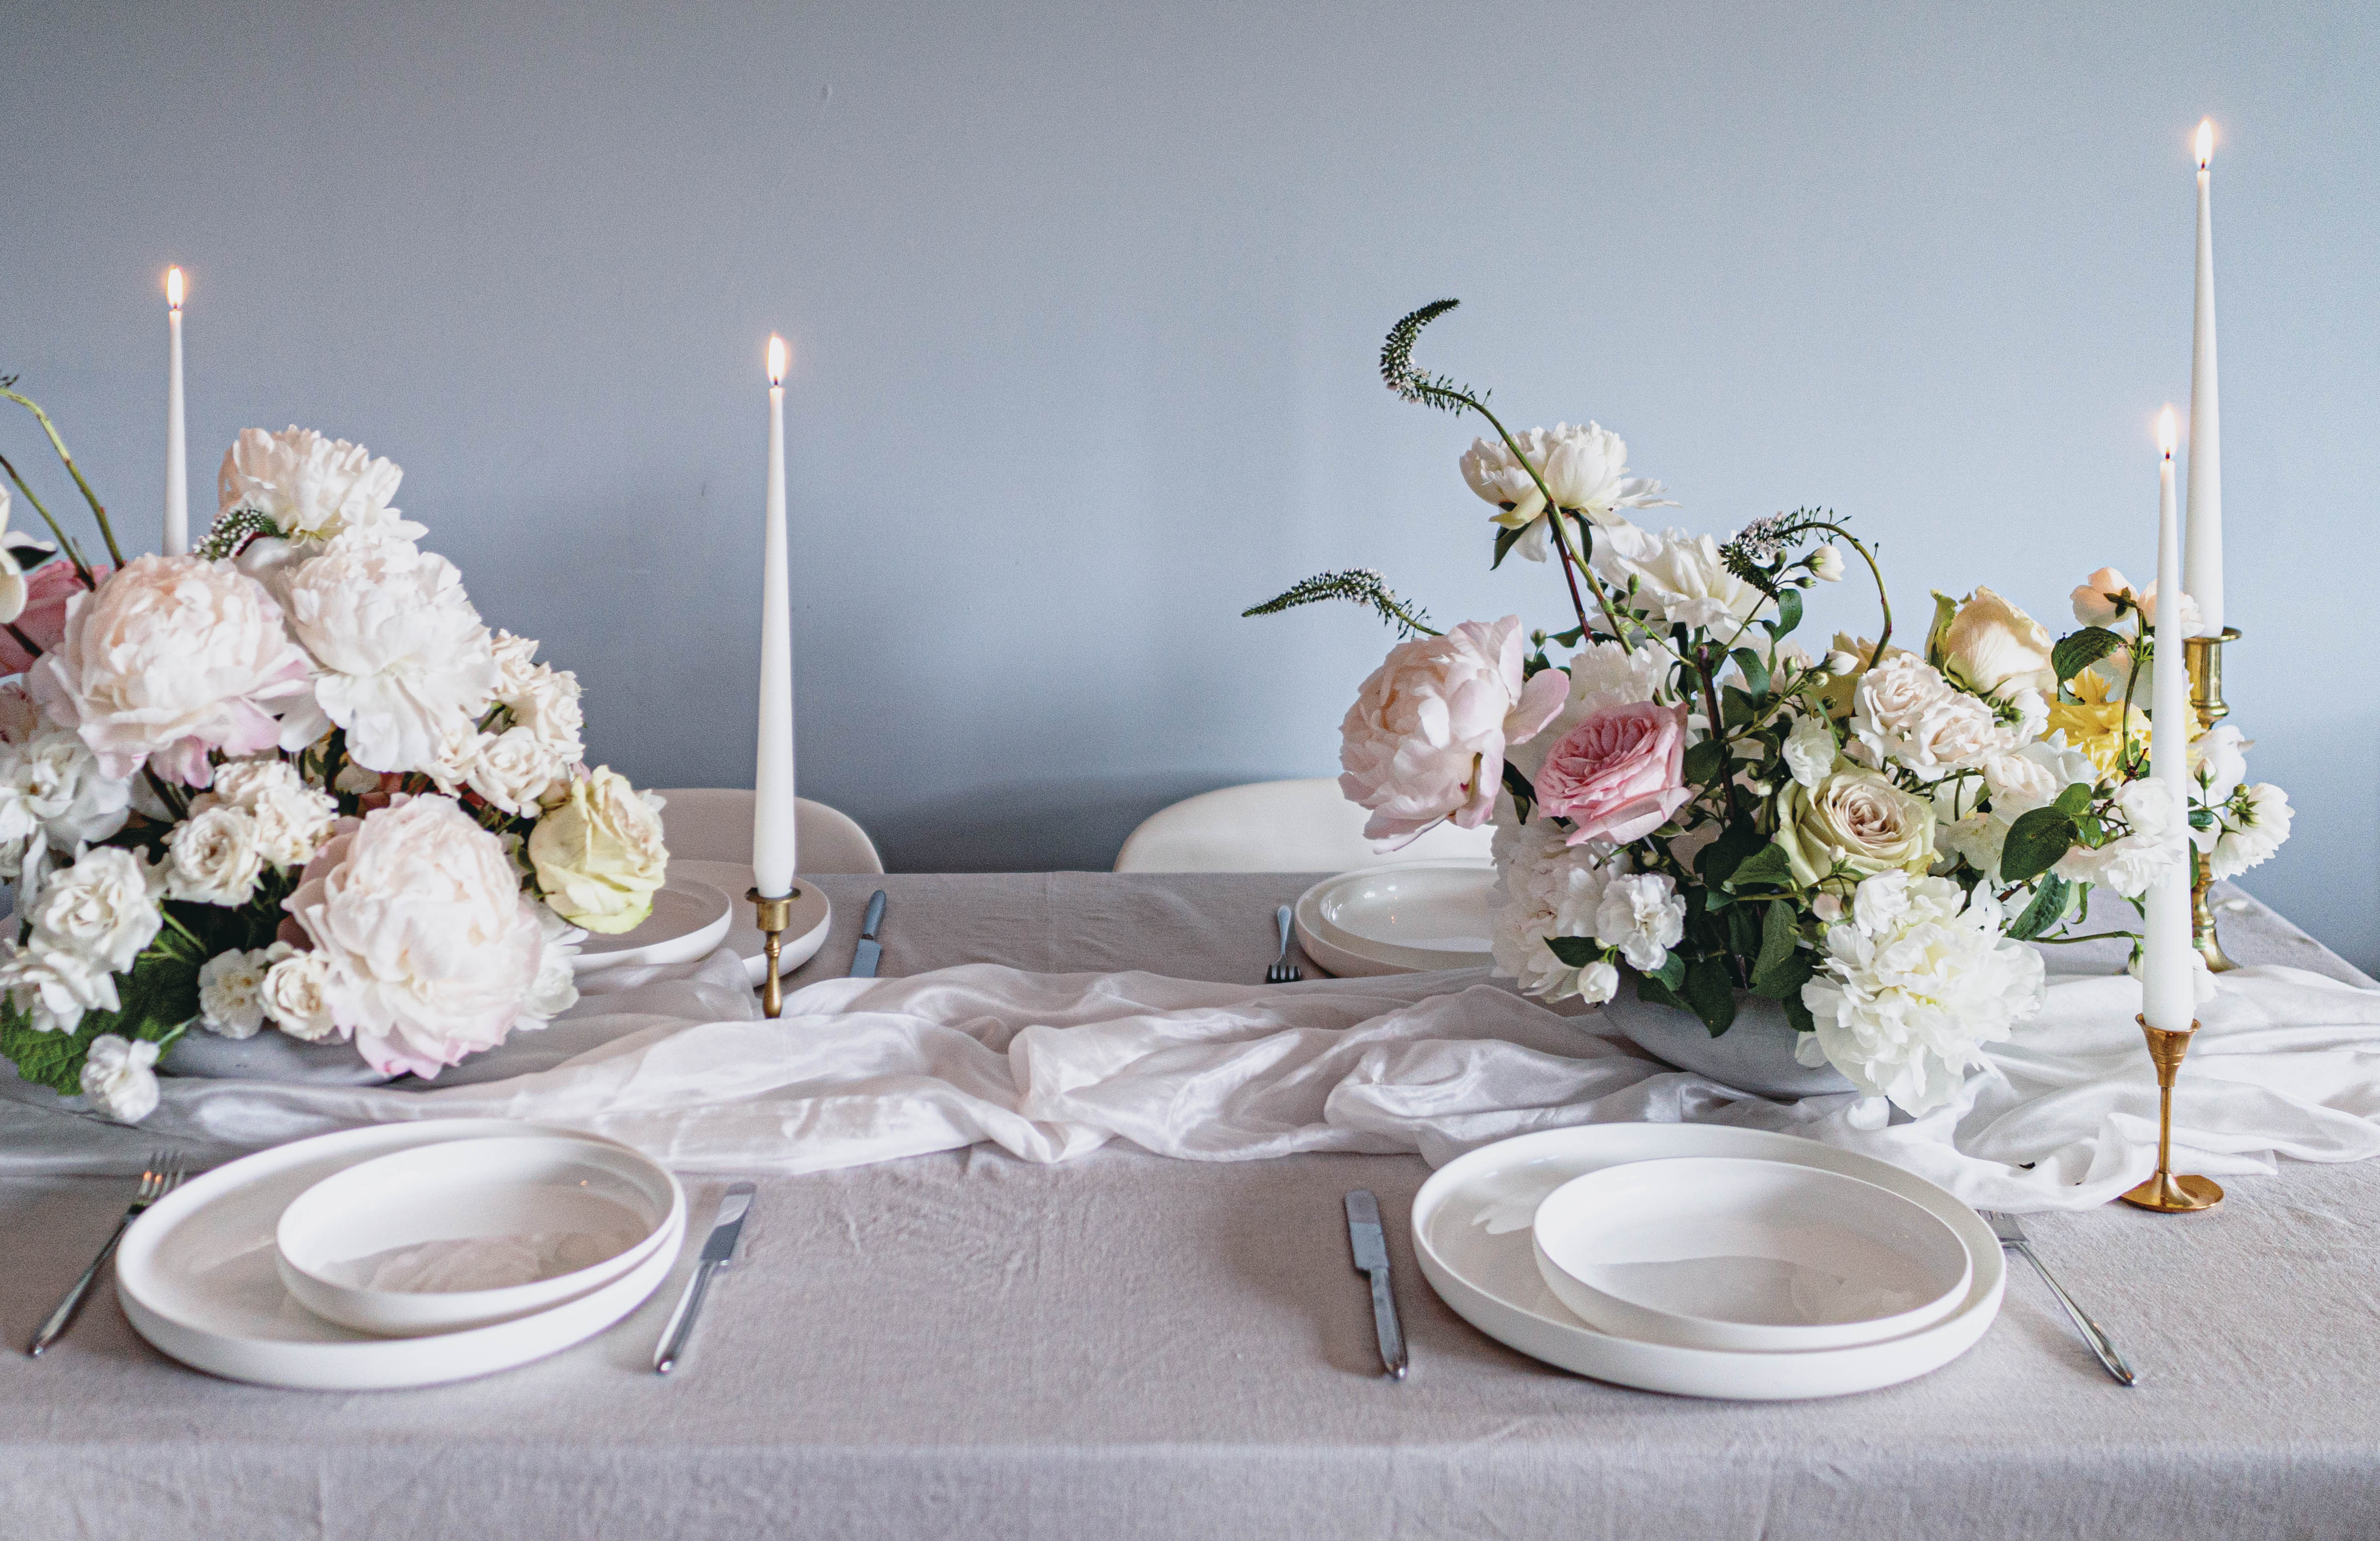 Peonies and Roses Wedding Table Centrepieces and Table Set-up with White Round Plates and Tapered Candles in Antique French Candlestick